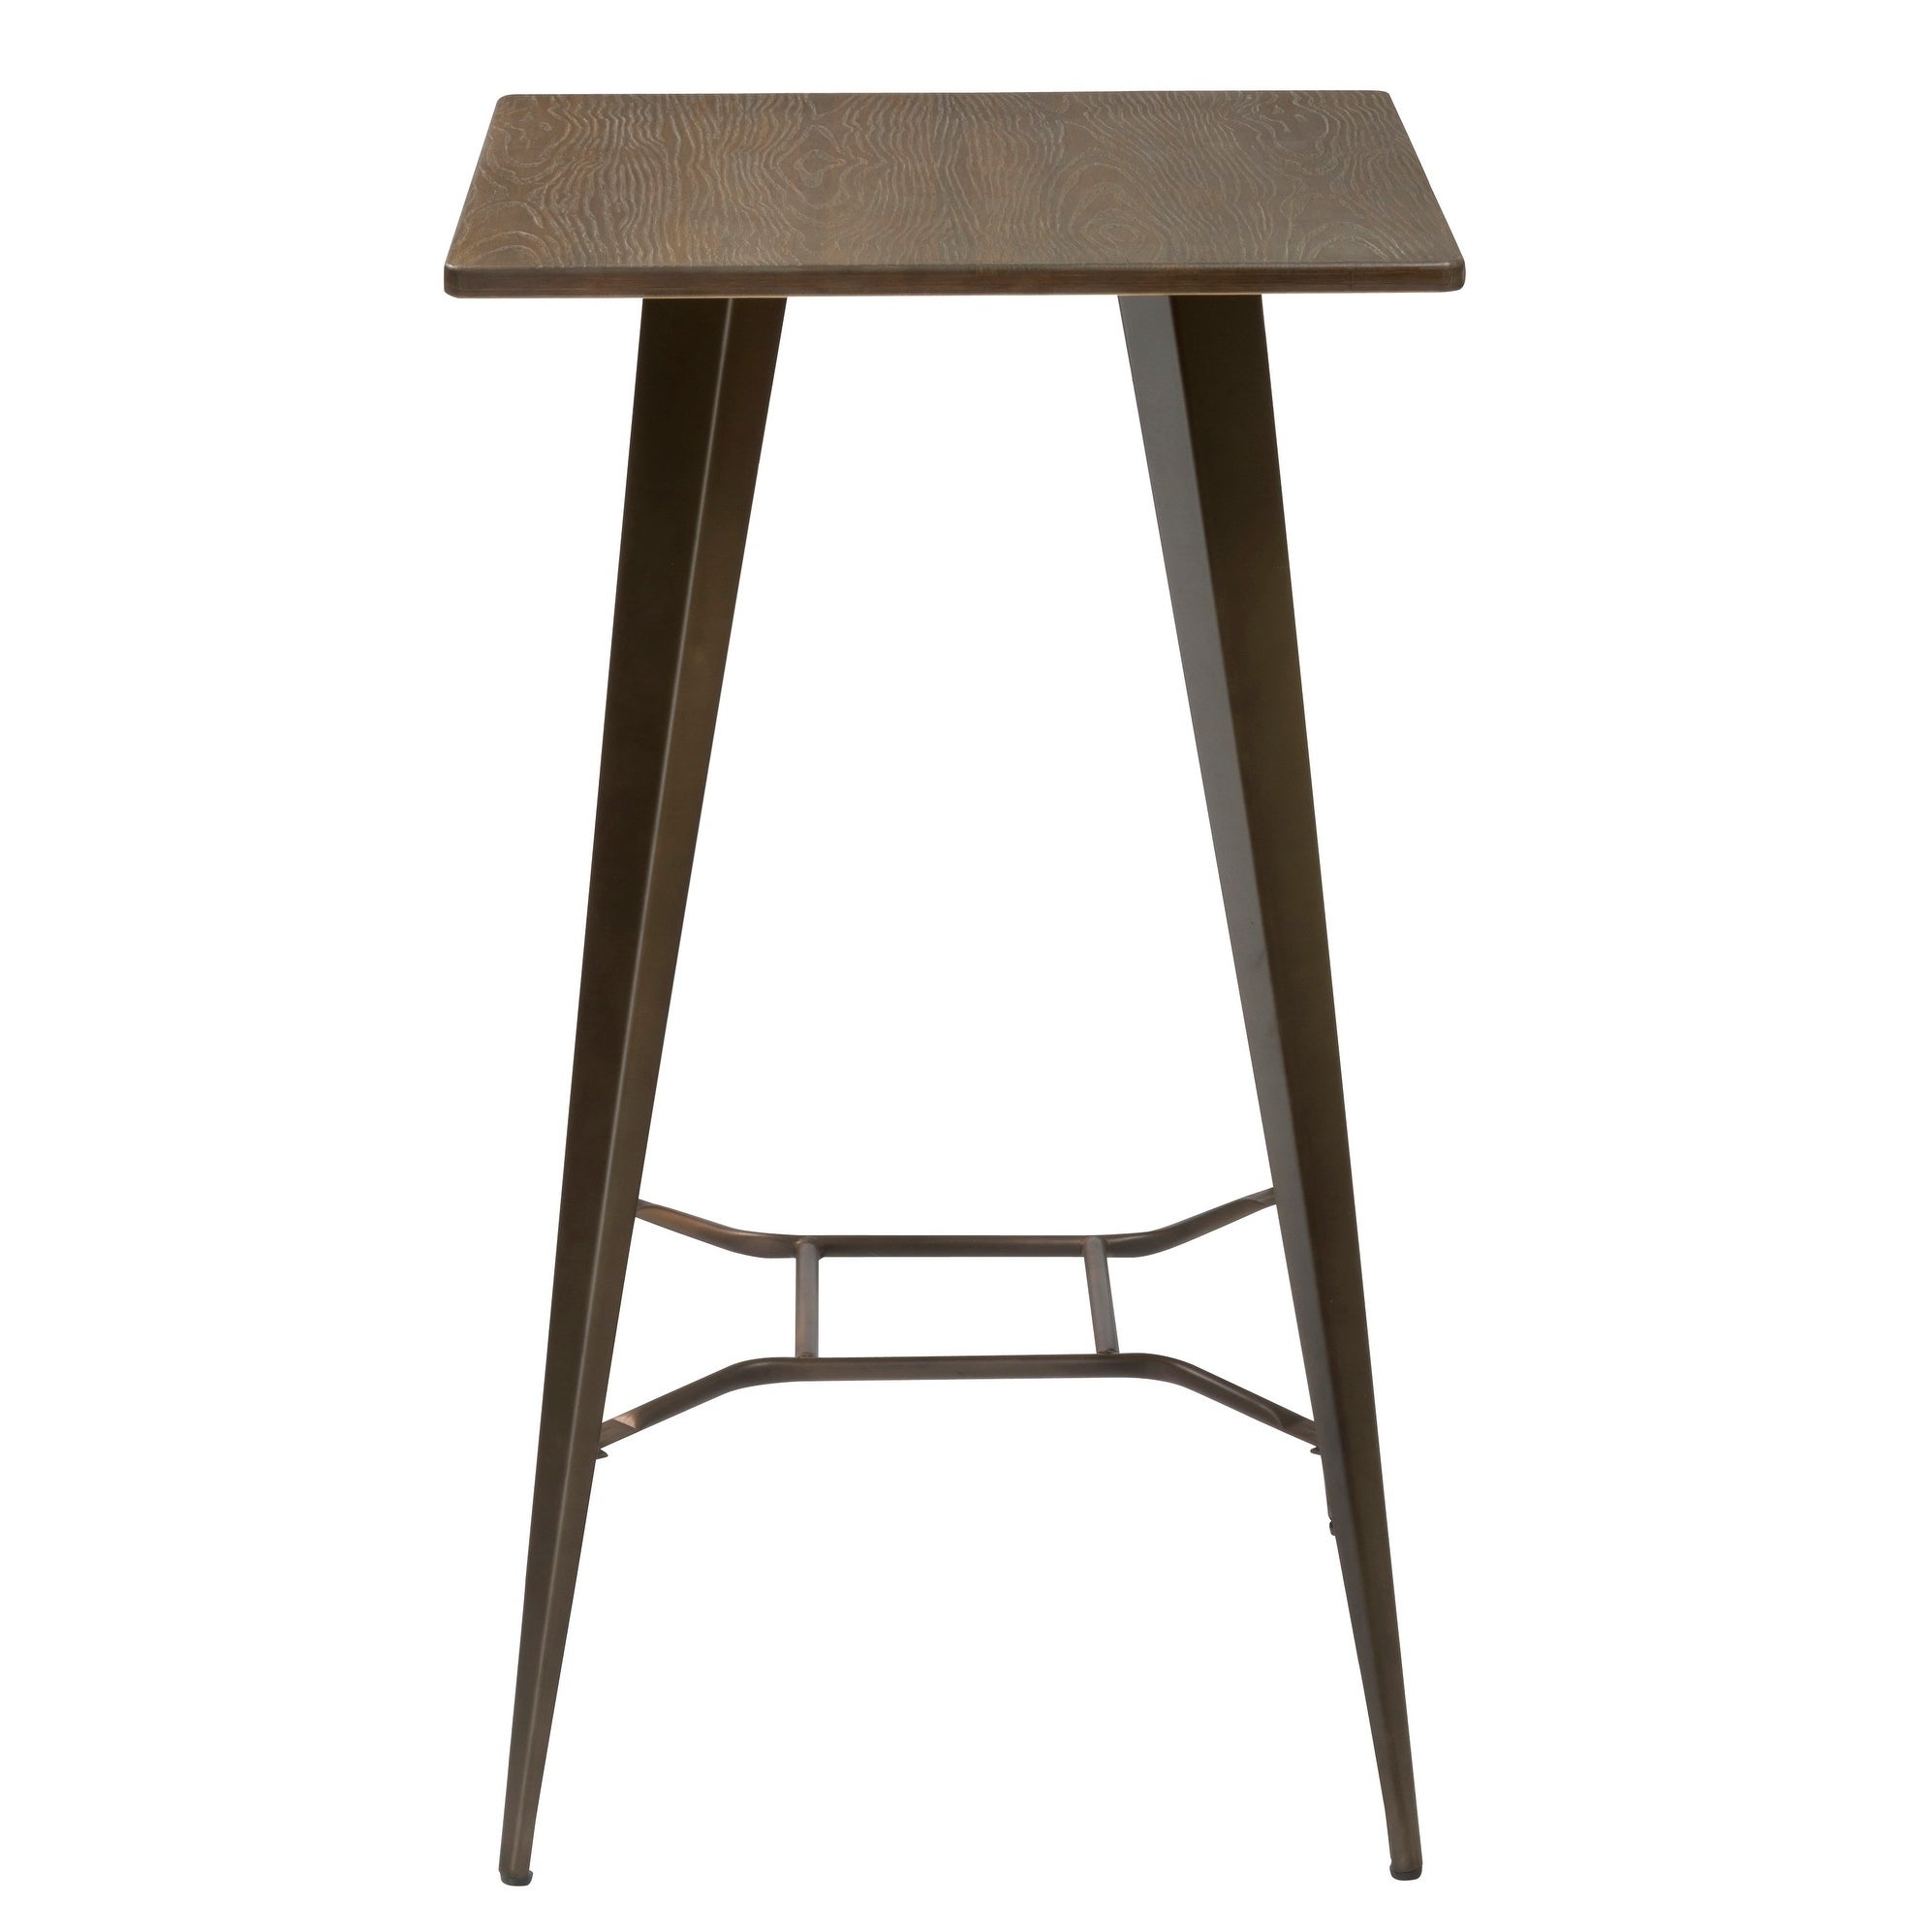 Antique Distressed Rustic Metal Dining Pub Bar Table With Wood Top